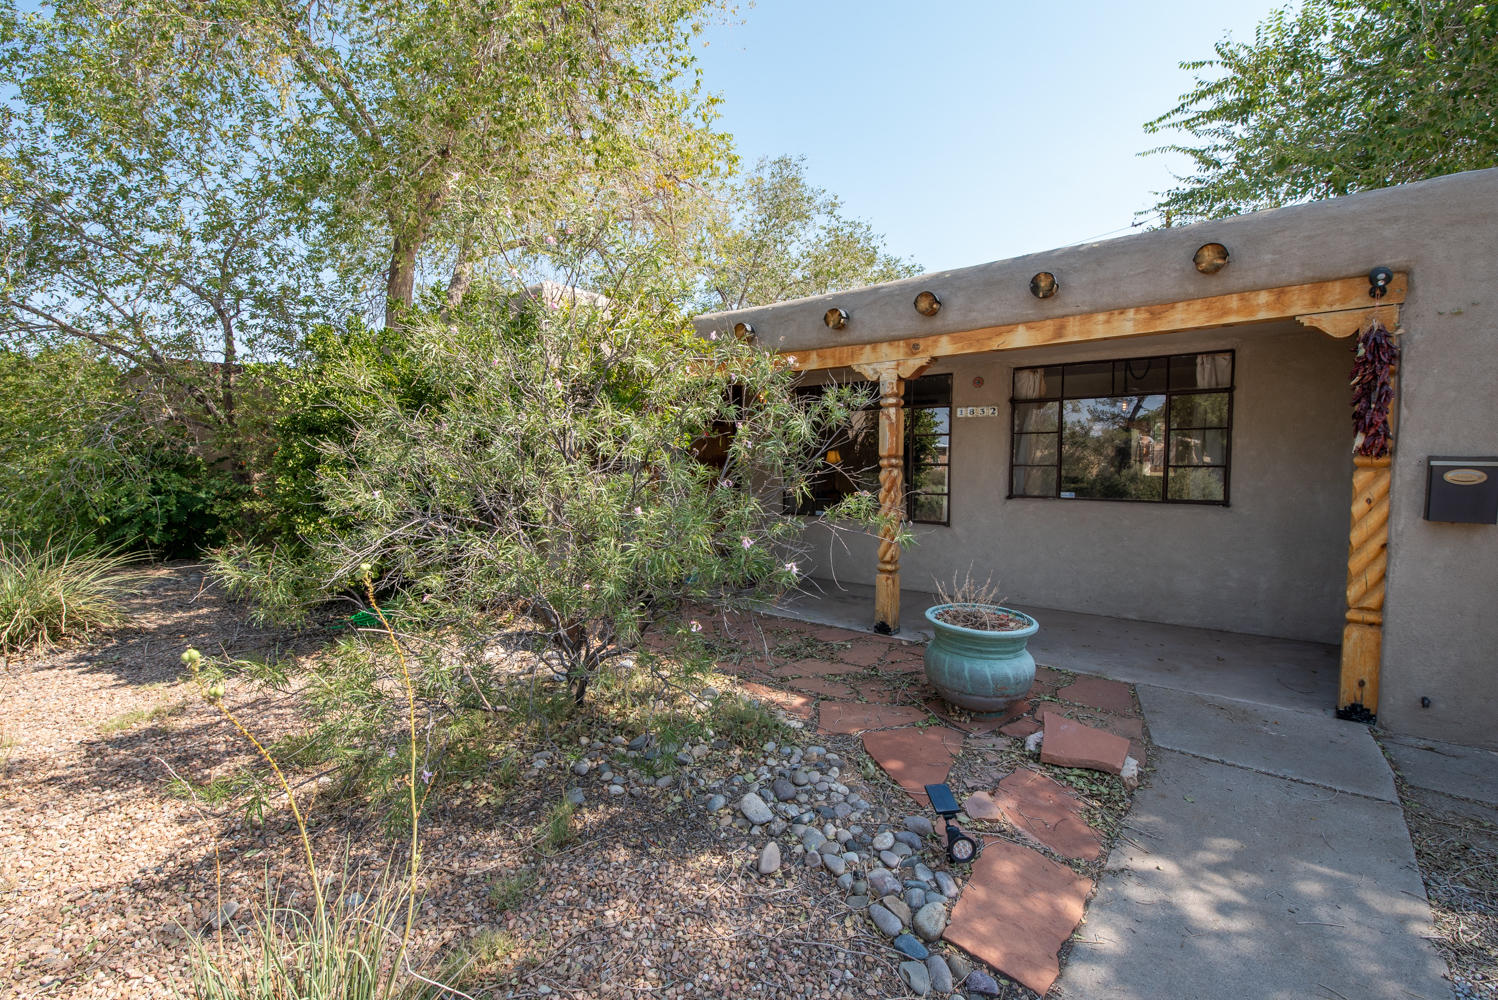 OPEN HOUSE - Saturday 12:00 to 4:30 and Sunday 1:30- 3:30. Great location close to Uptown, Coronado and I-40! Charming single story home with wood floors, fireplace and a large backyard. Two living area including a large family room with fireplace. Spacious light filled kitchen with oversized skylight. TPO roof installed in 2014 with a 10 year warranty. All appliances stay so you can move right in!